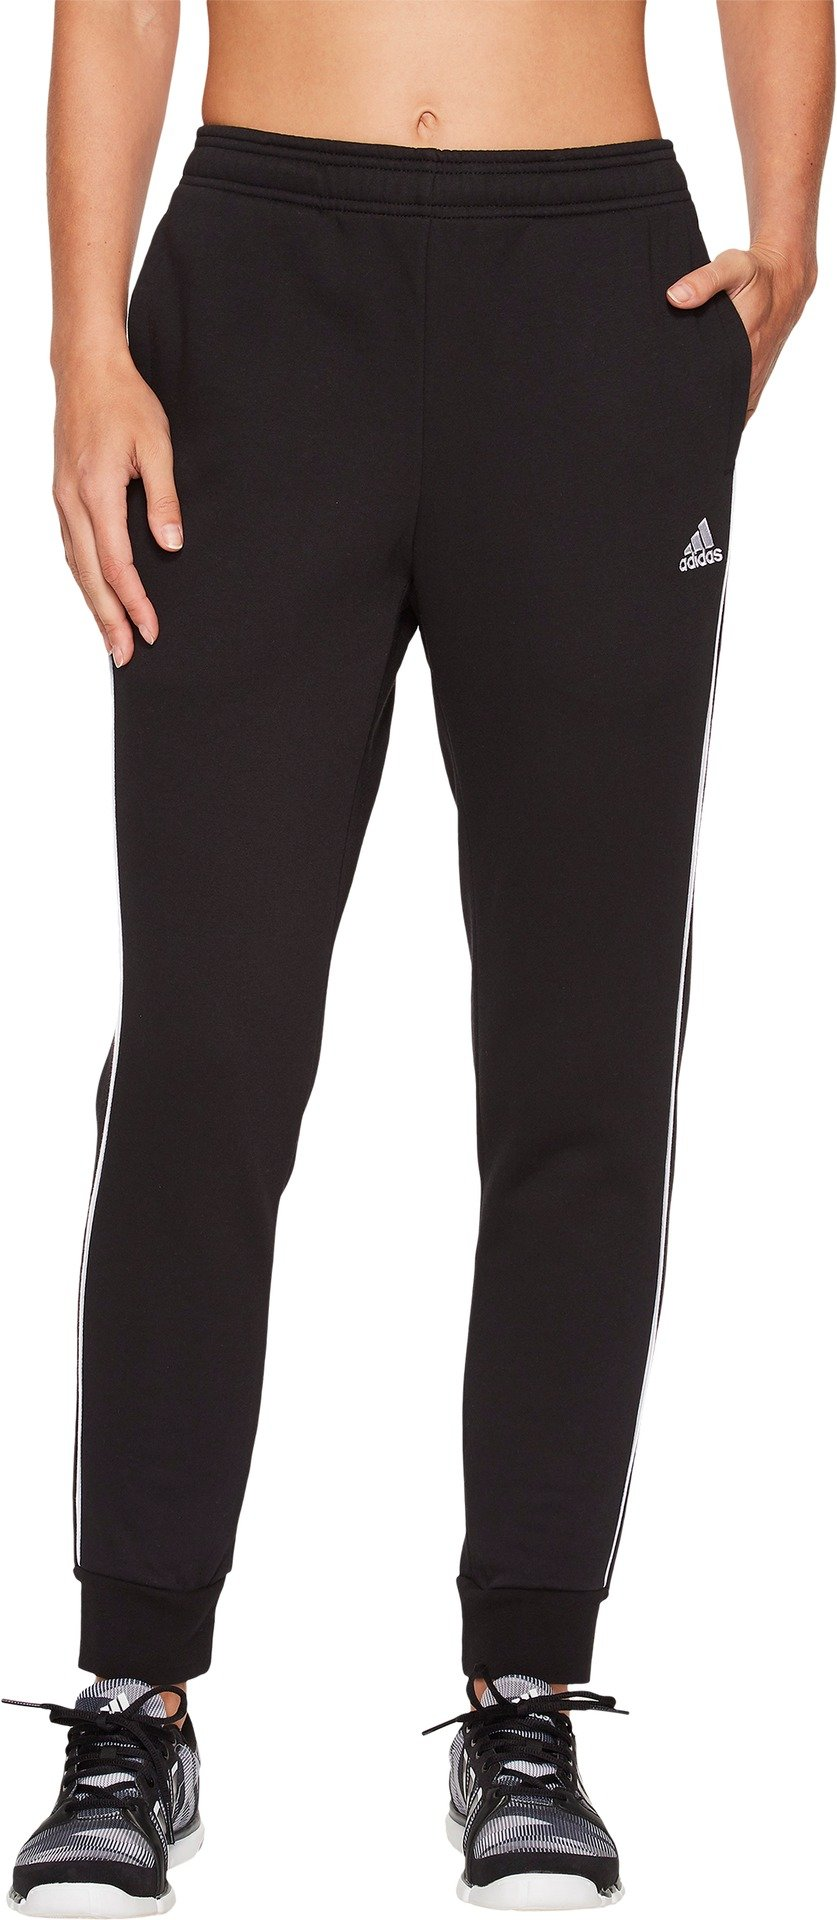 adidas Women's Core18 Sweat Pants, Black/White, X-Small